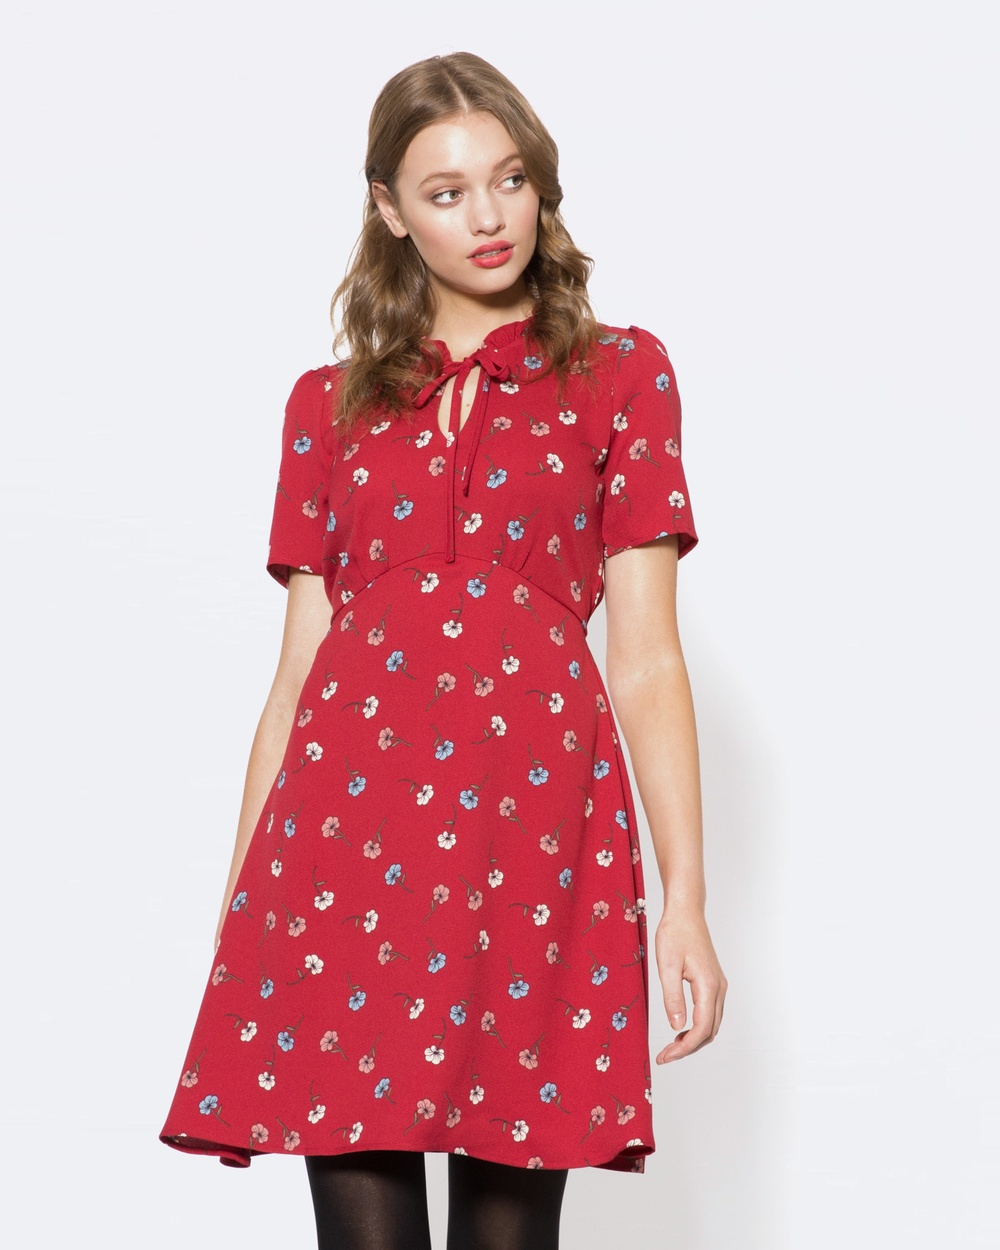 Princess Highway Annabelle Dress Dresses Red Annabelle Dress